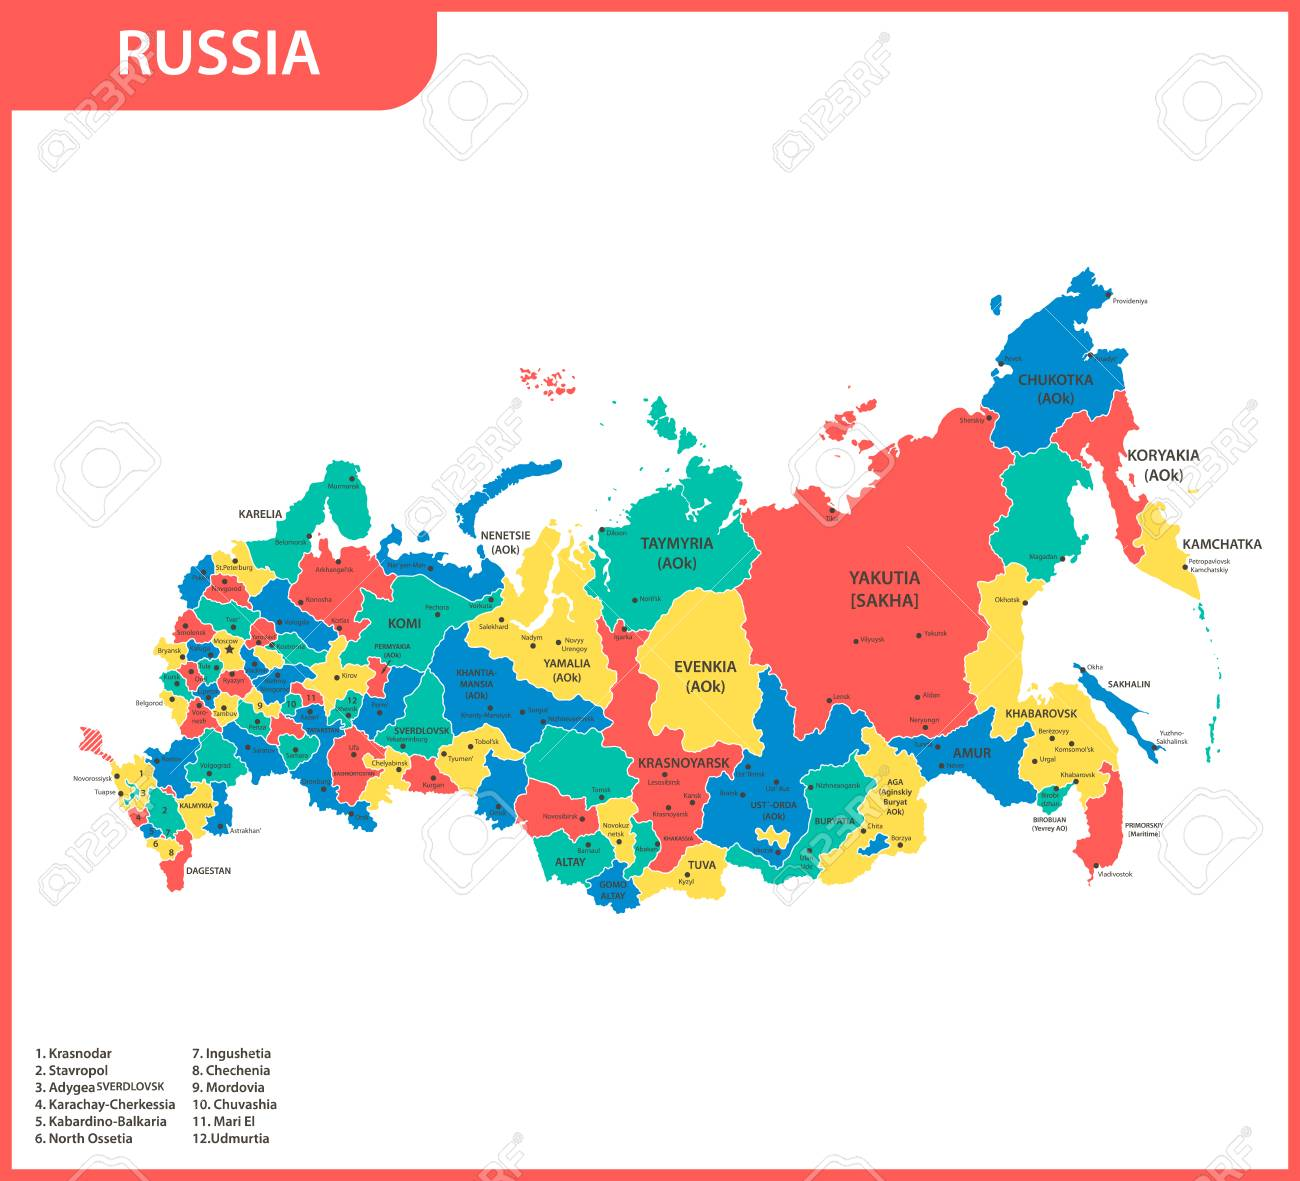 The Detailed Map Of The Russia With Regions Or States And Cities